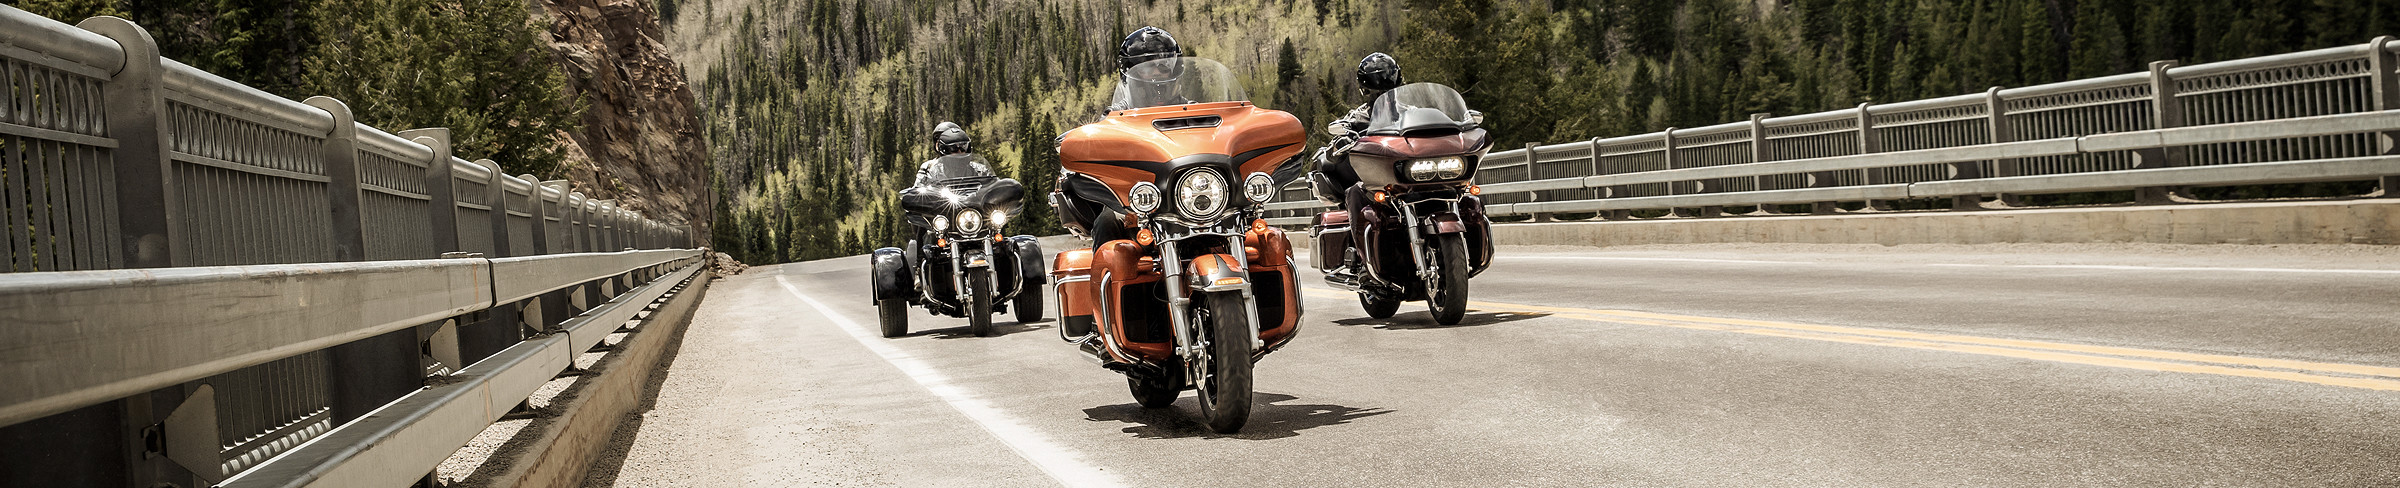 Used Harley Davidson Ultra Limited for sale near Mankato, Minnesota